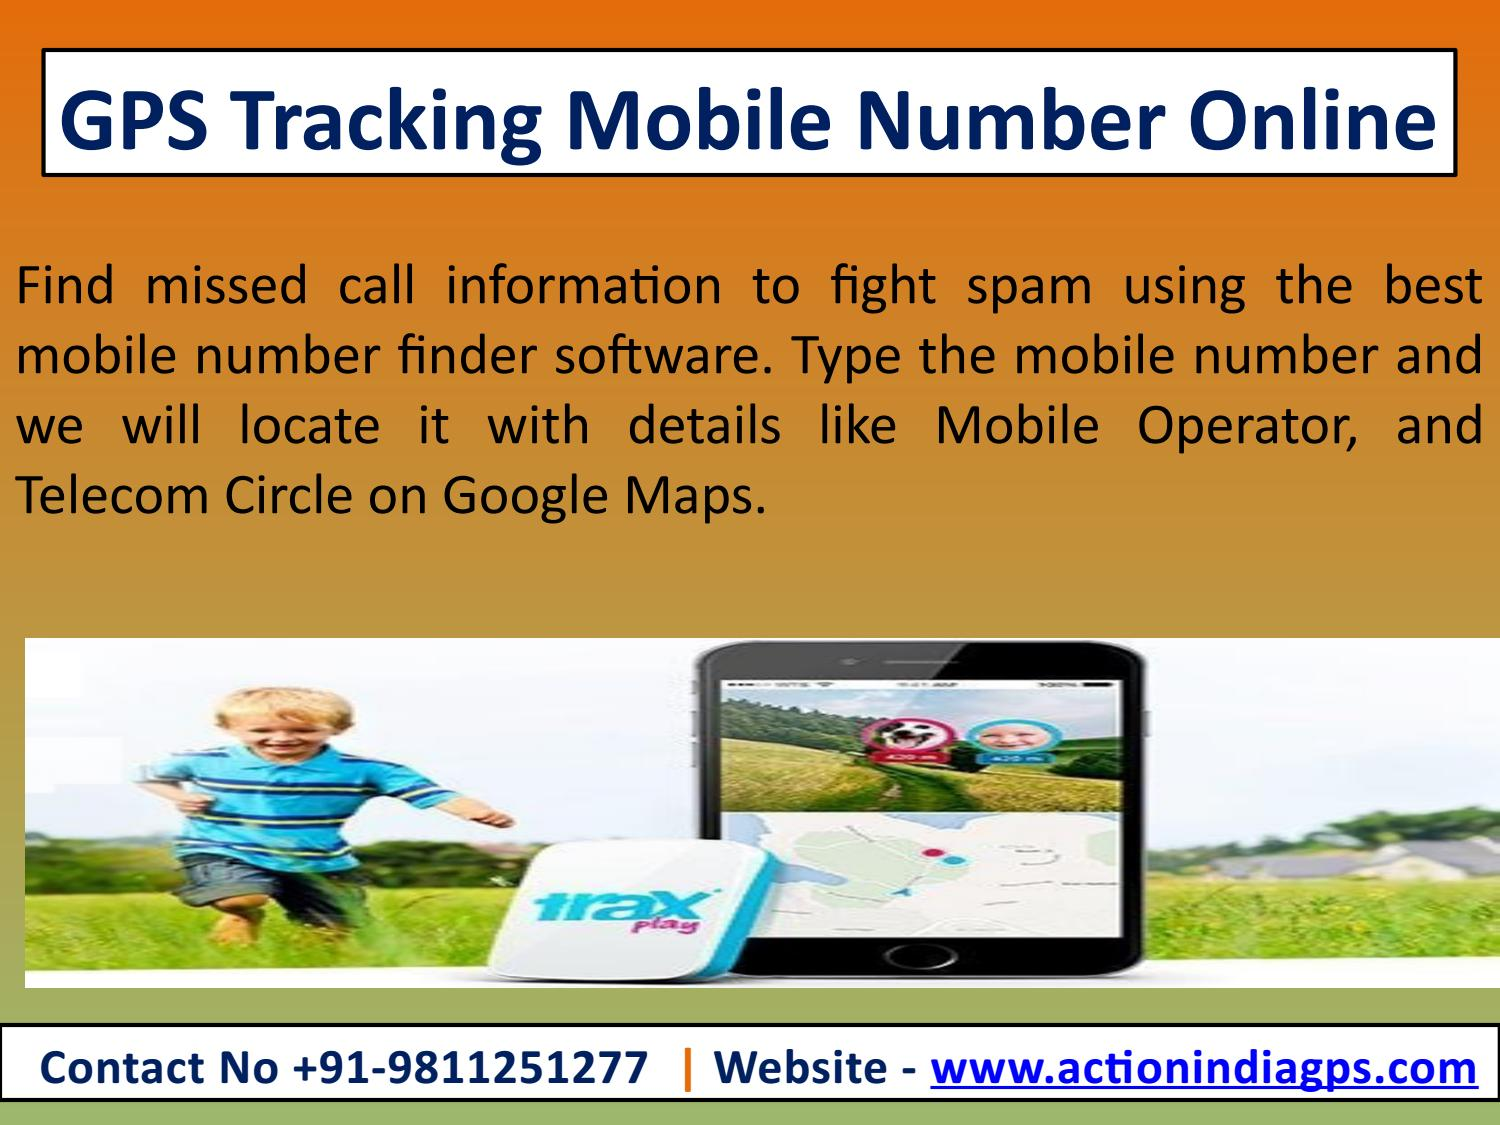 Mobile number locator in map software